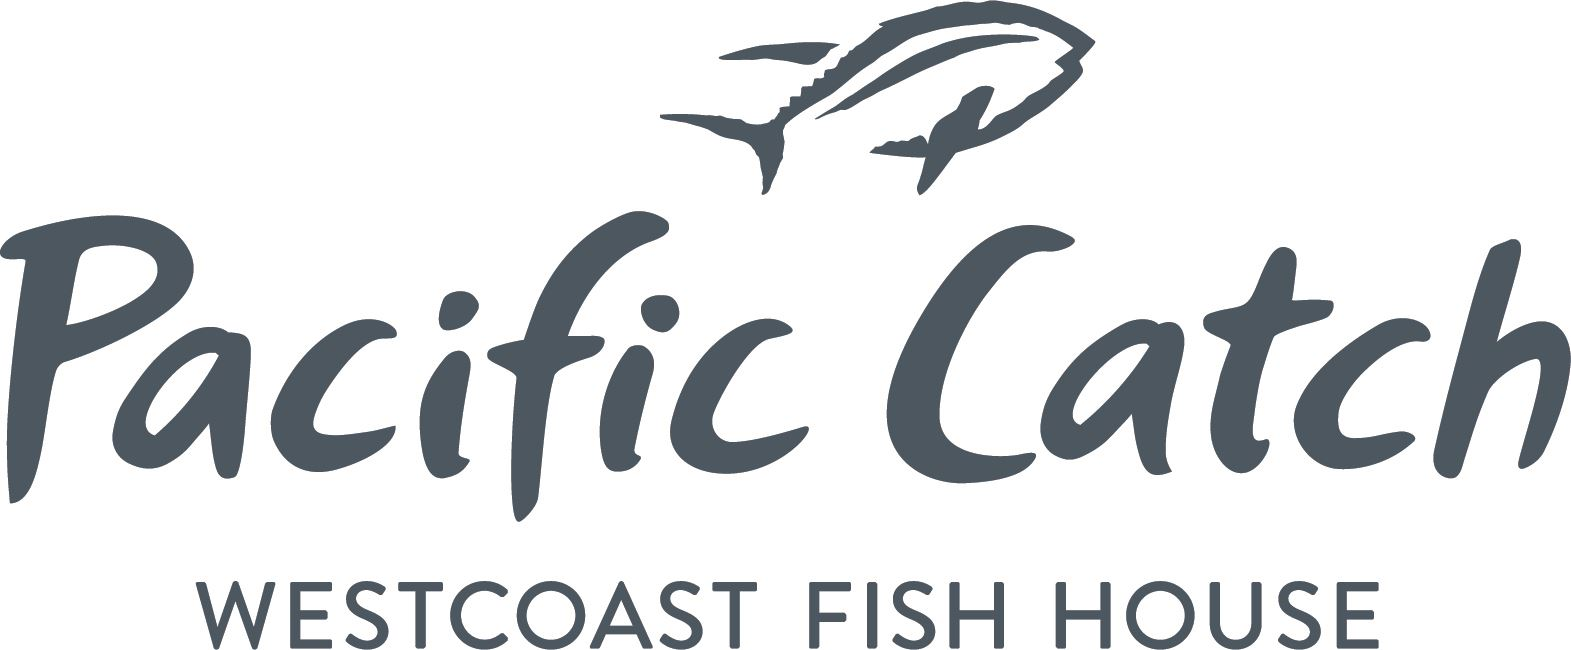 Image of Pacific Catch logo.